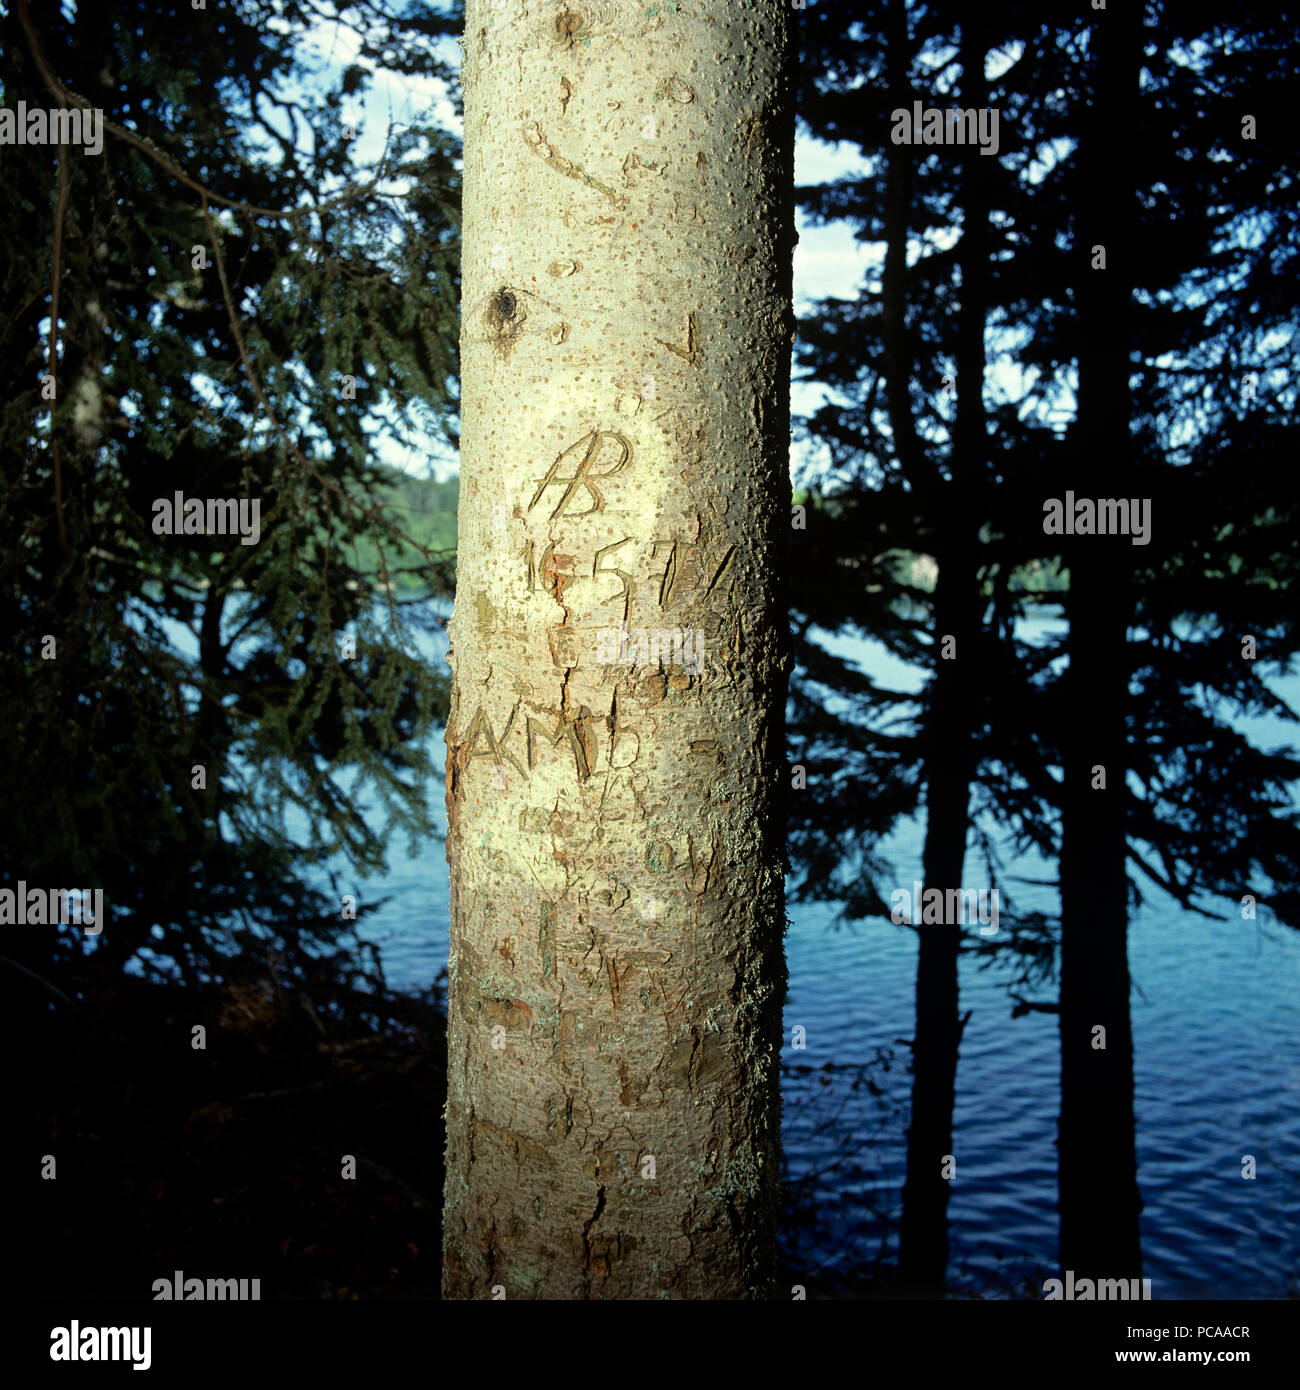 Initials carved into a tree trunk - Stock Image